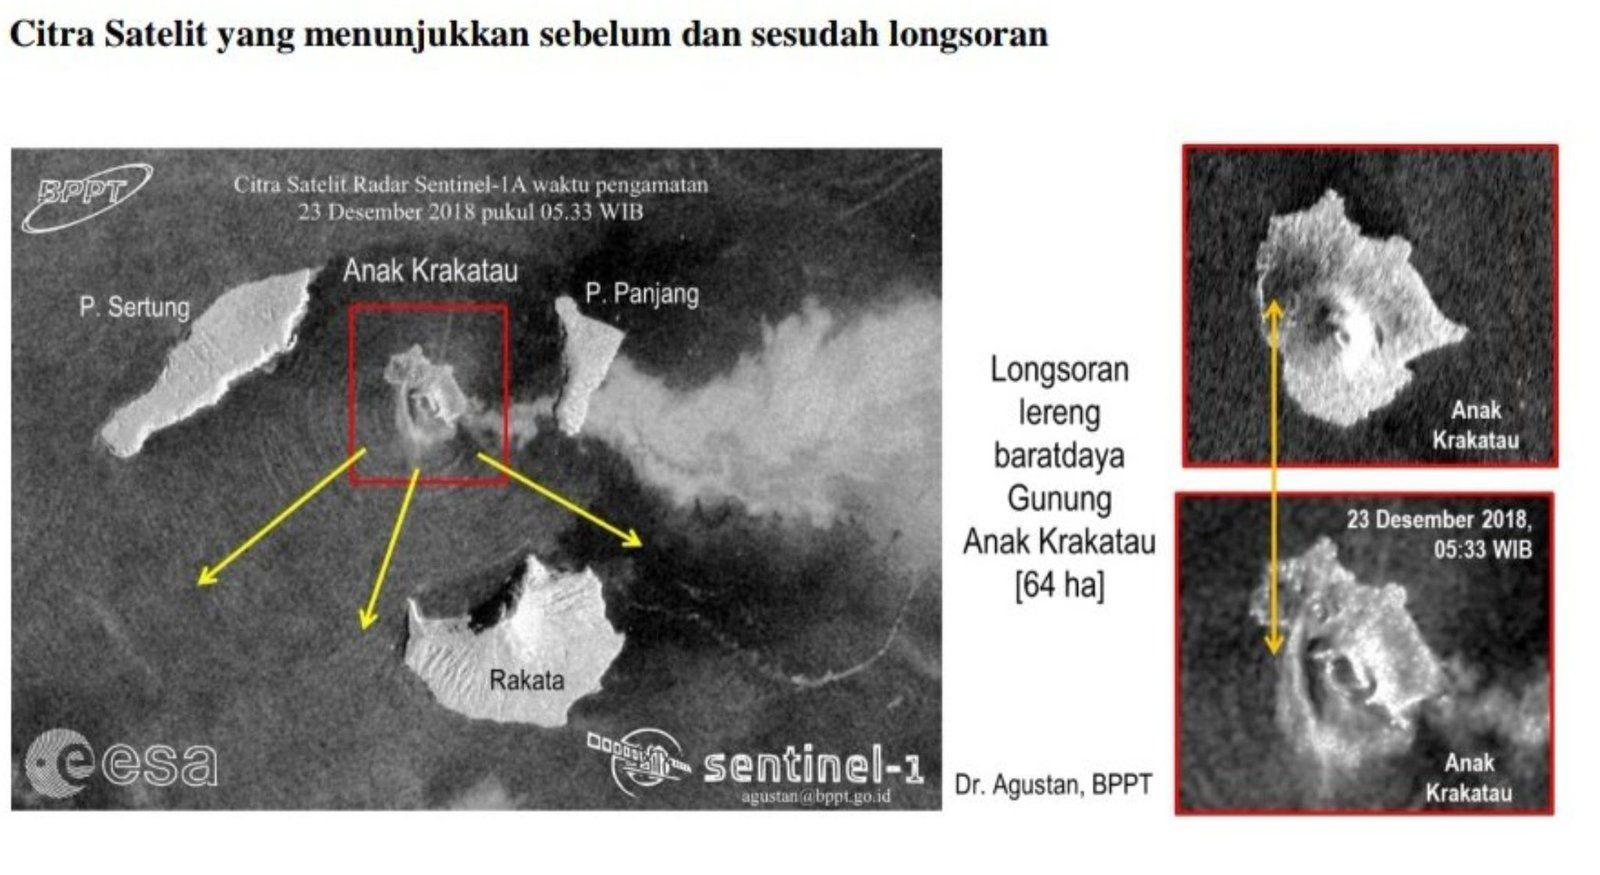 Anak Krakatau - Analysis of radar images and ash trajectories on 24.12.2018 - sources: BPPT and NOAA HYSPLIT model